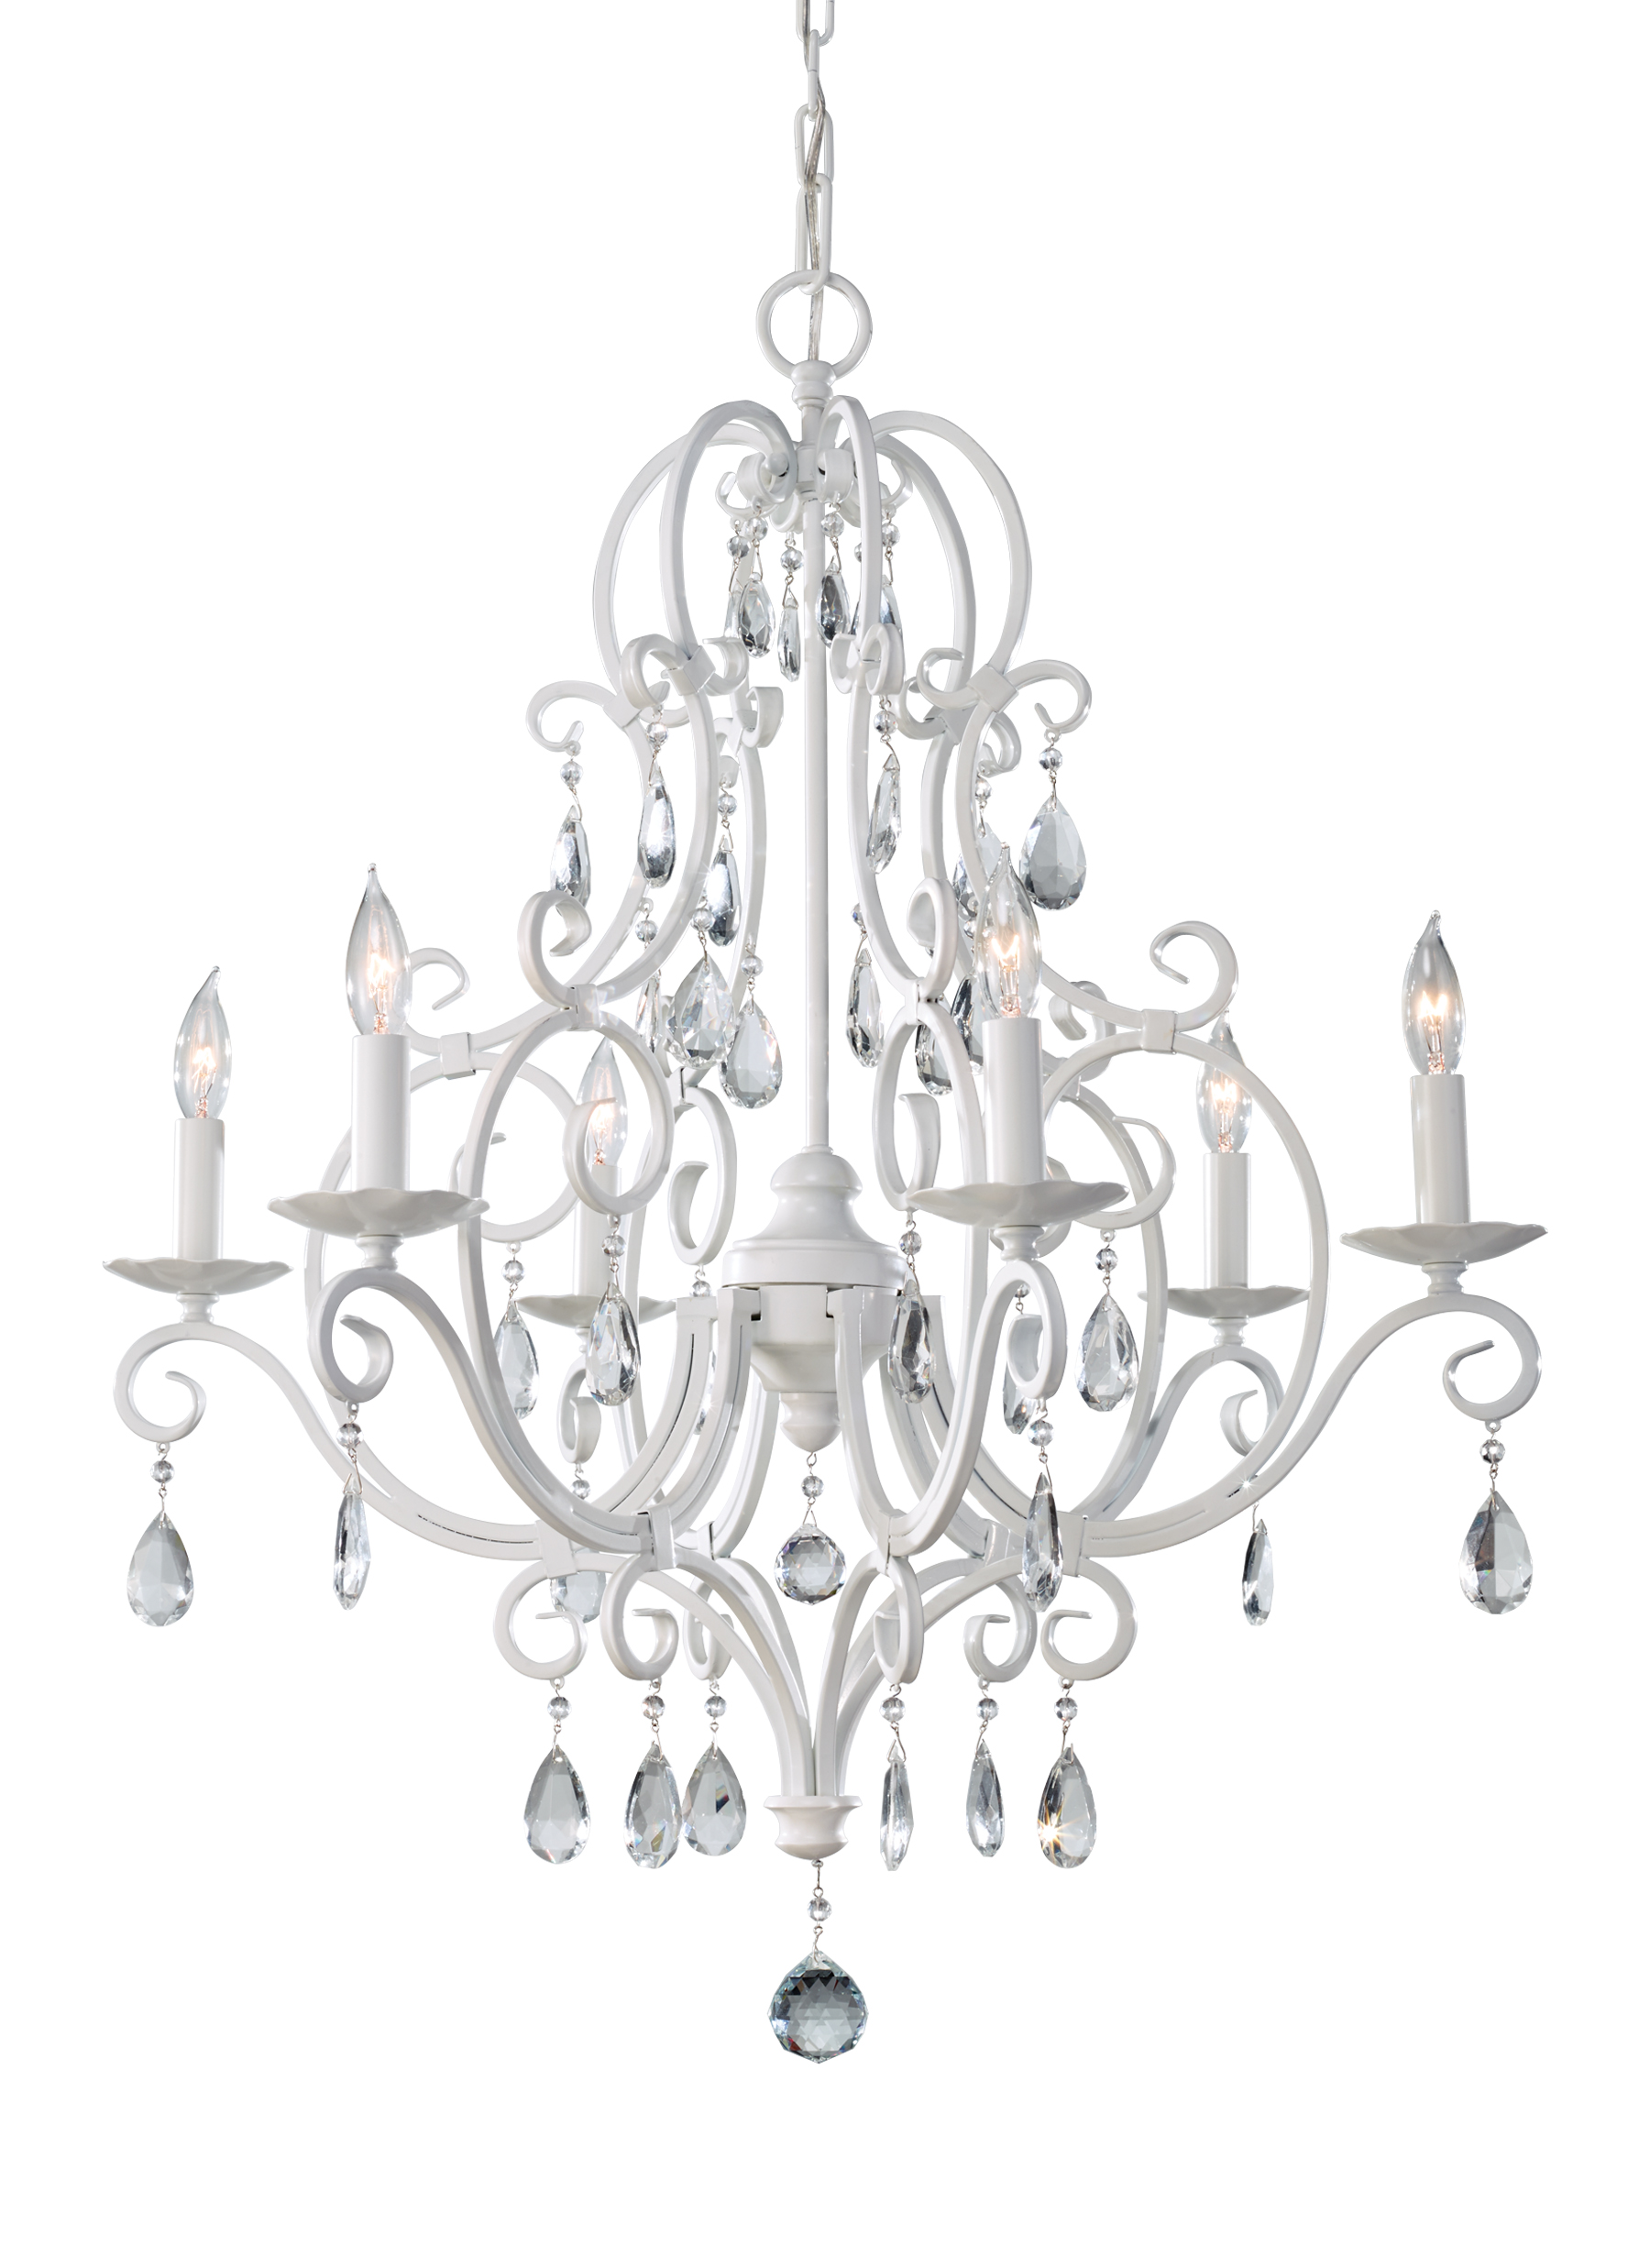 Feiss Chateau Blanc Collection traditional lighting